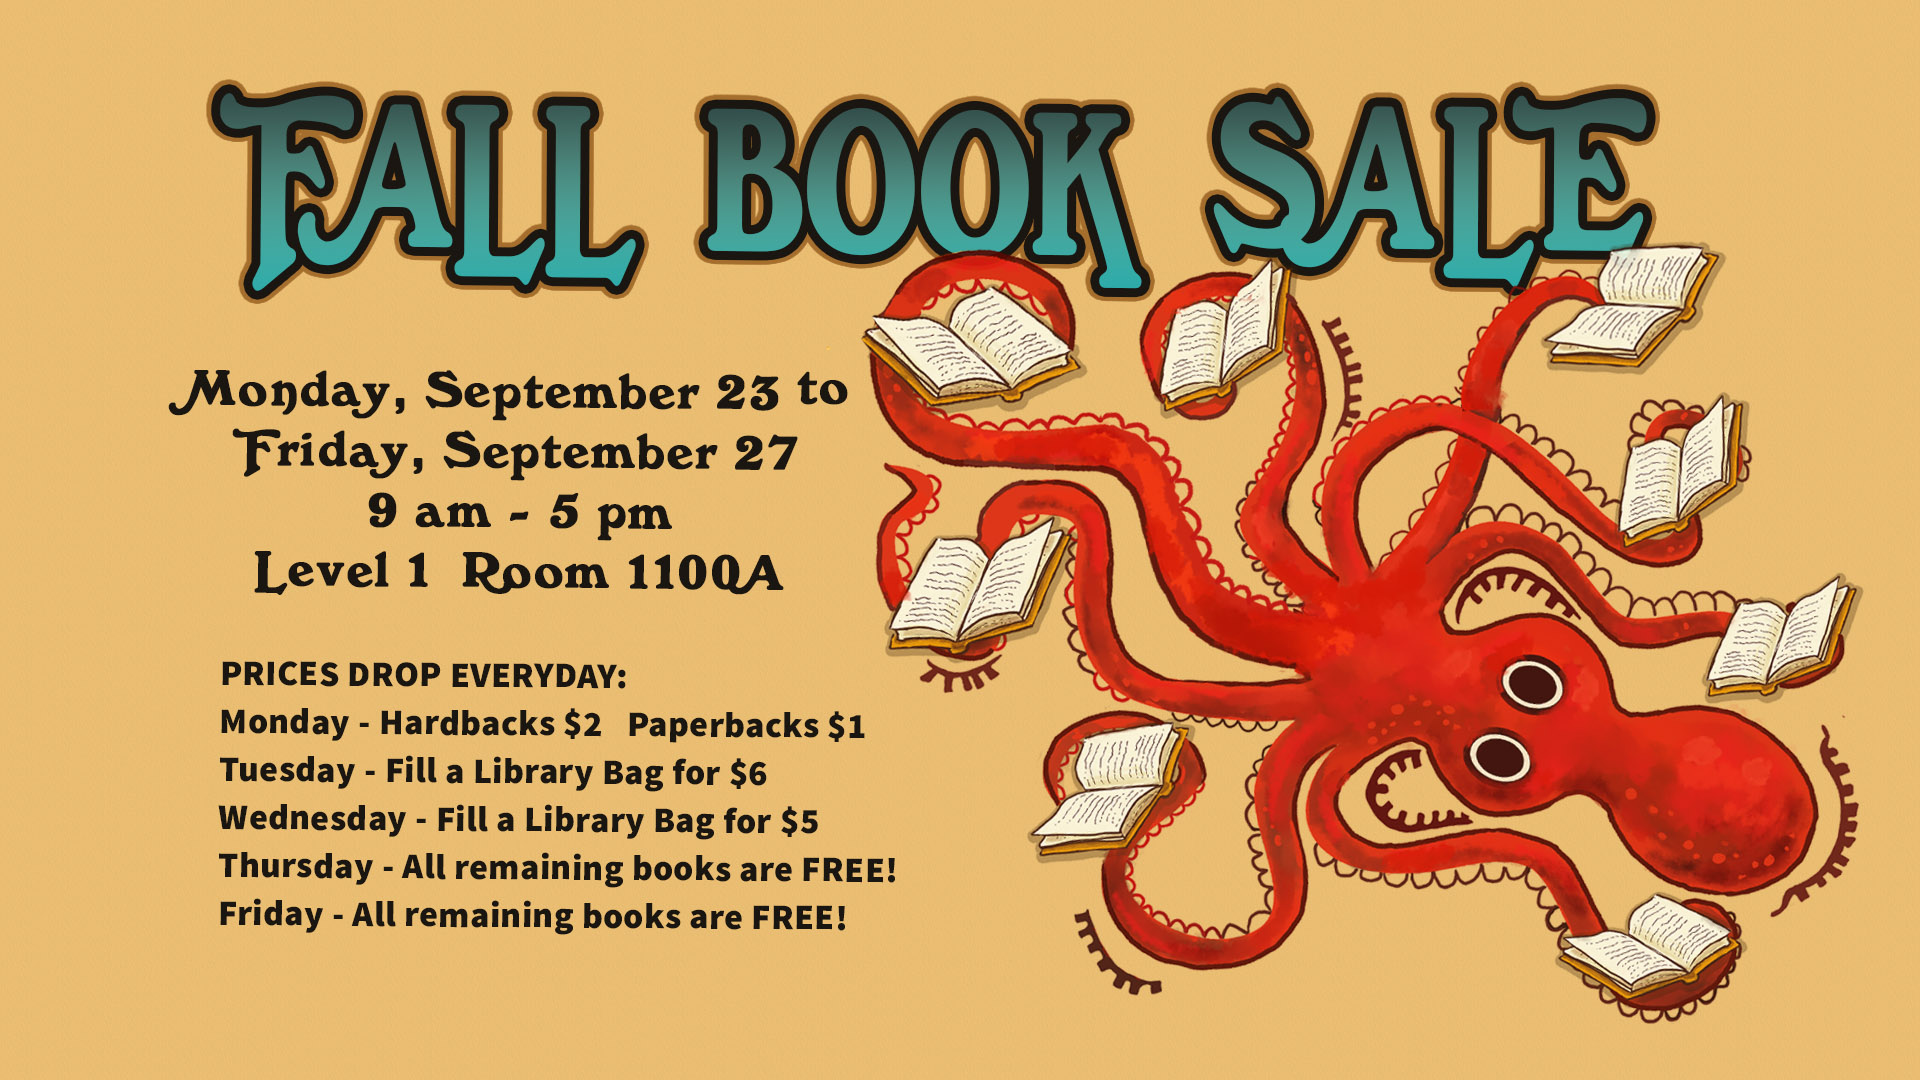 Fall Book Sale, September 23rd through 27th from 9 AM until 5PM, Room 1100 A